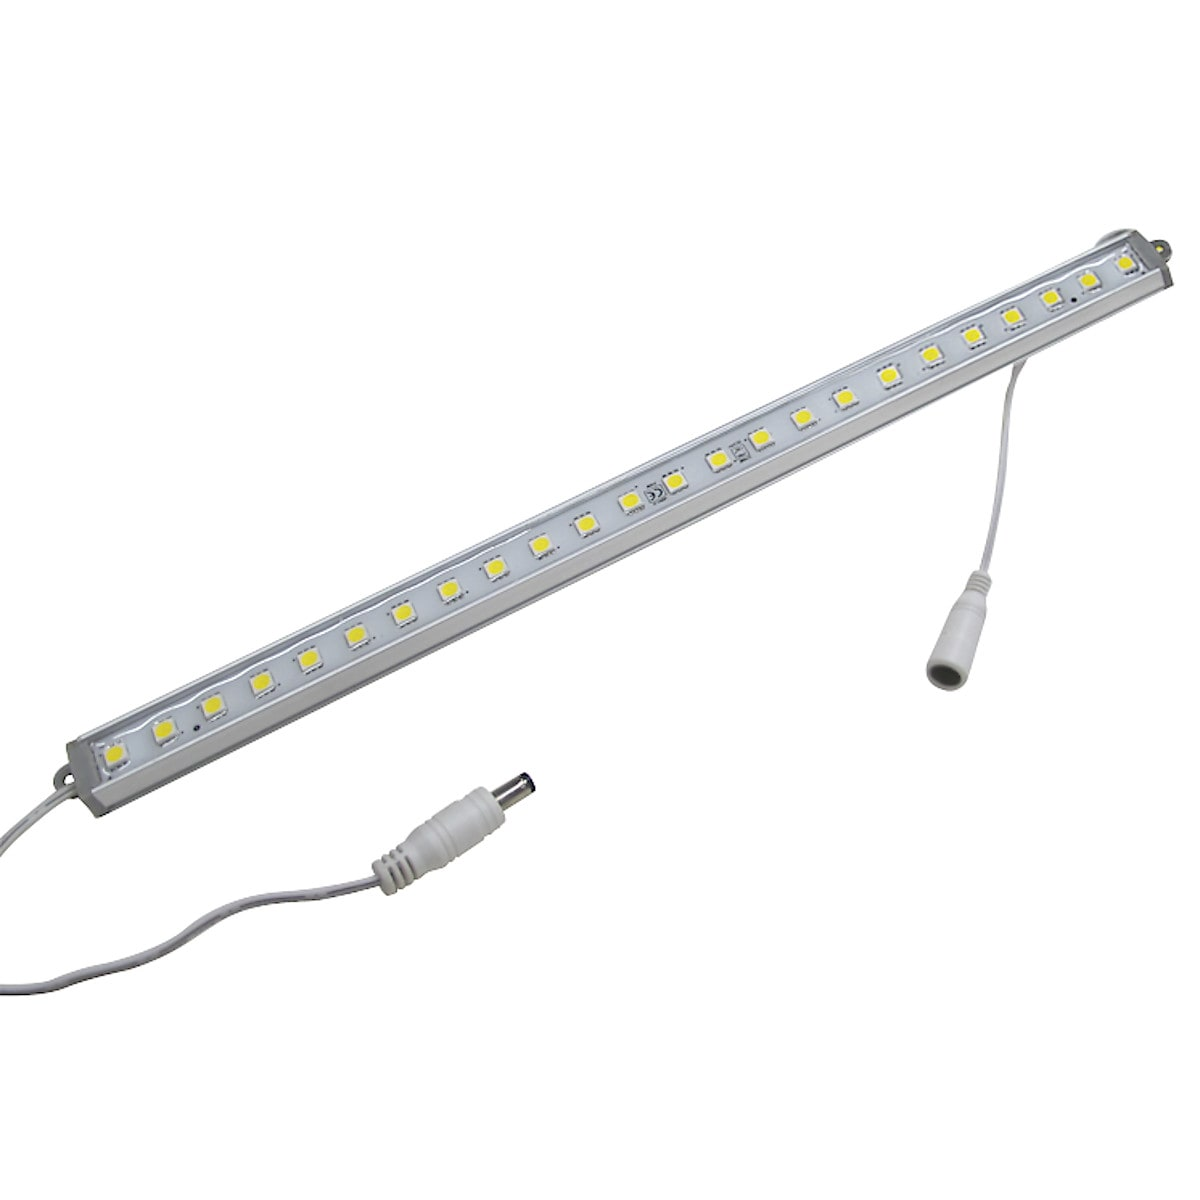 LED-ljuslist 12 V Northlight